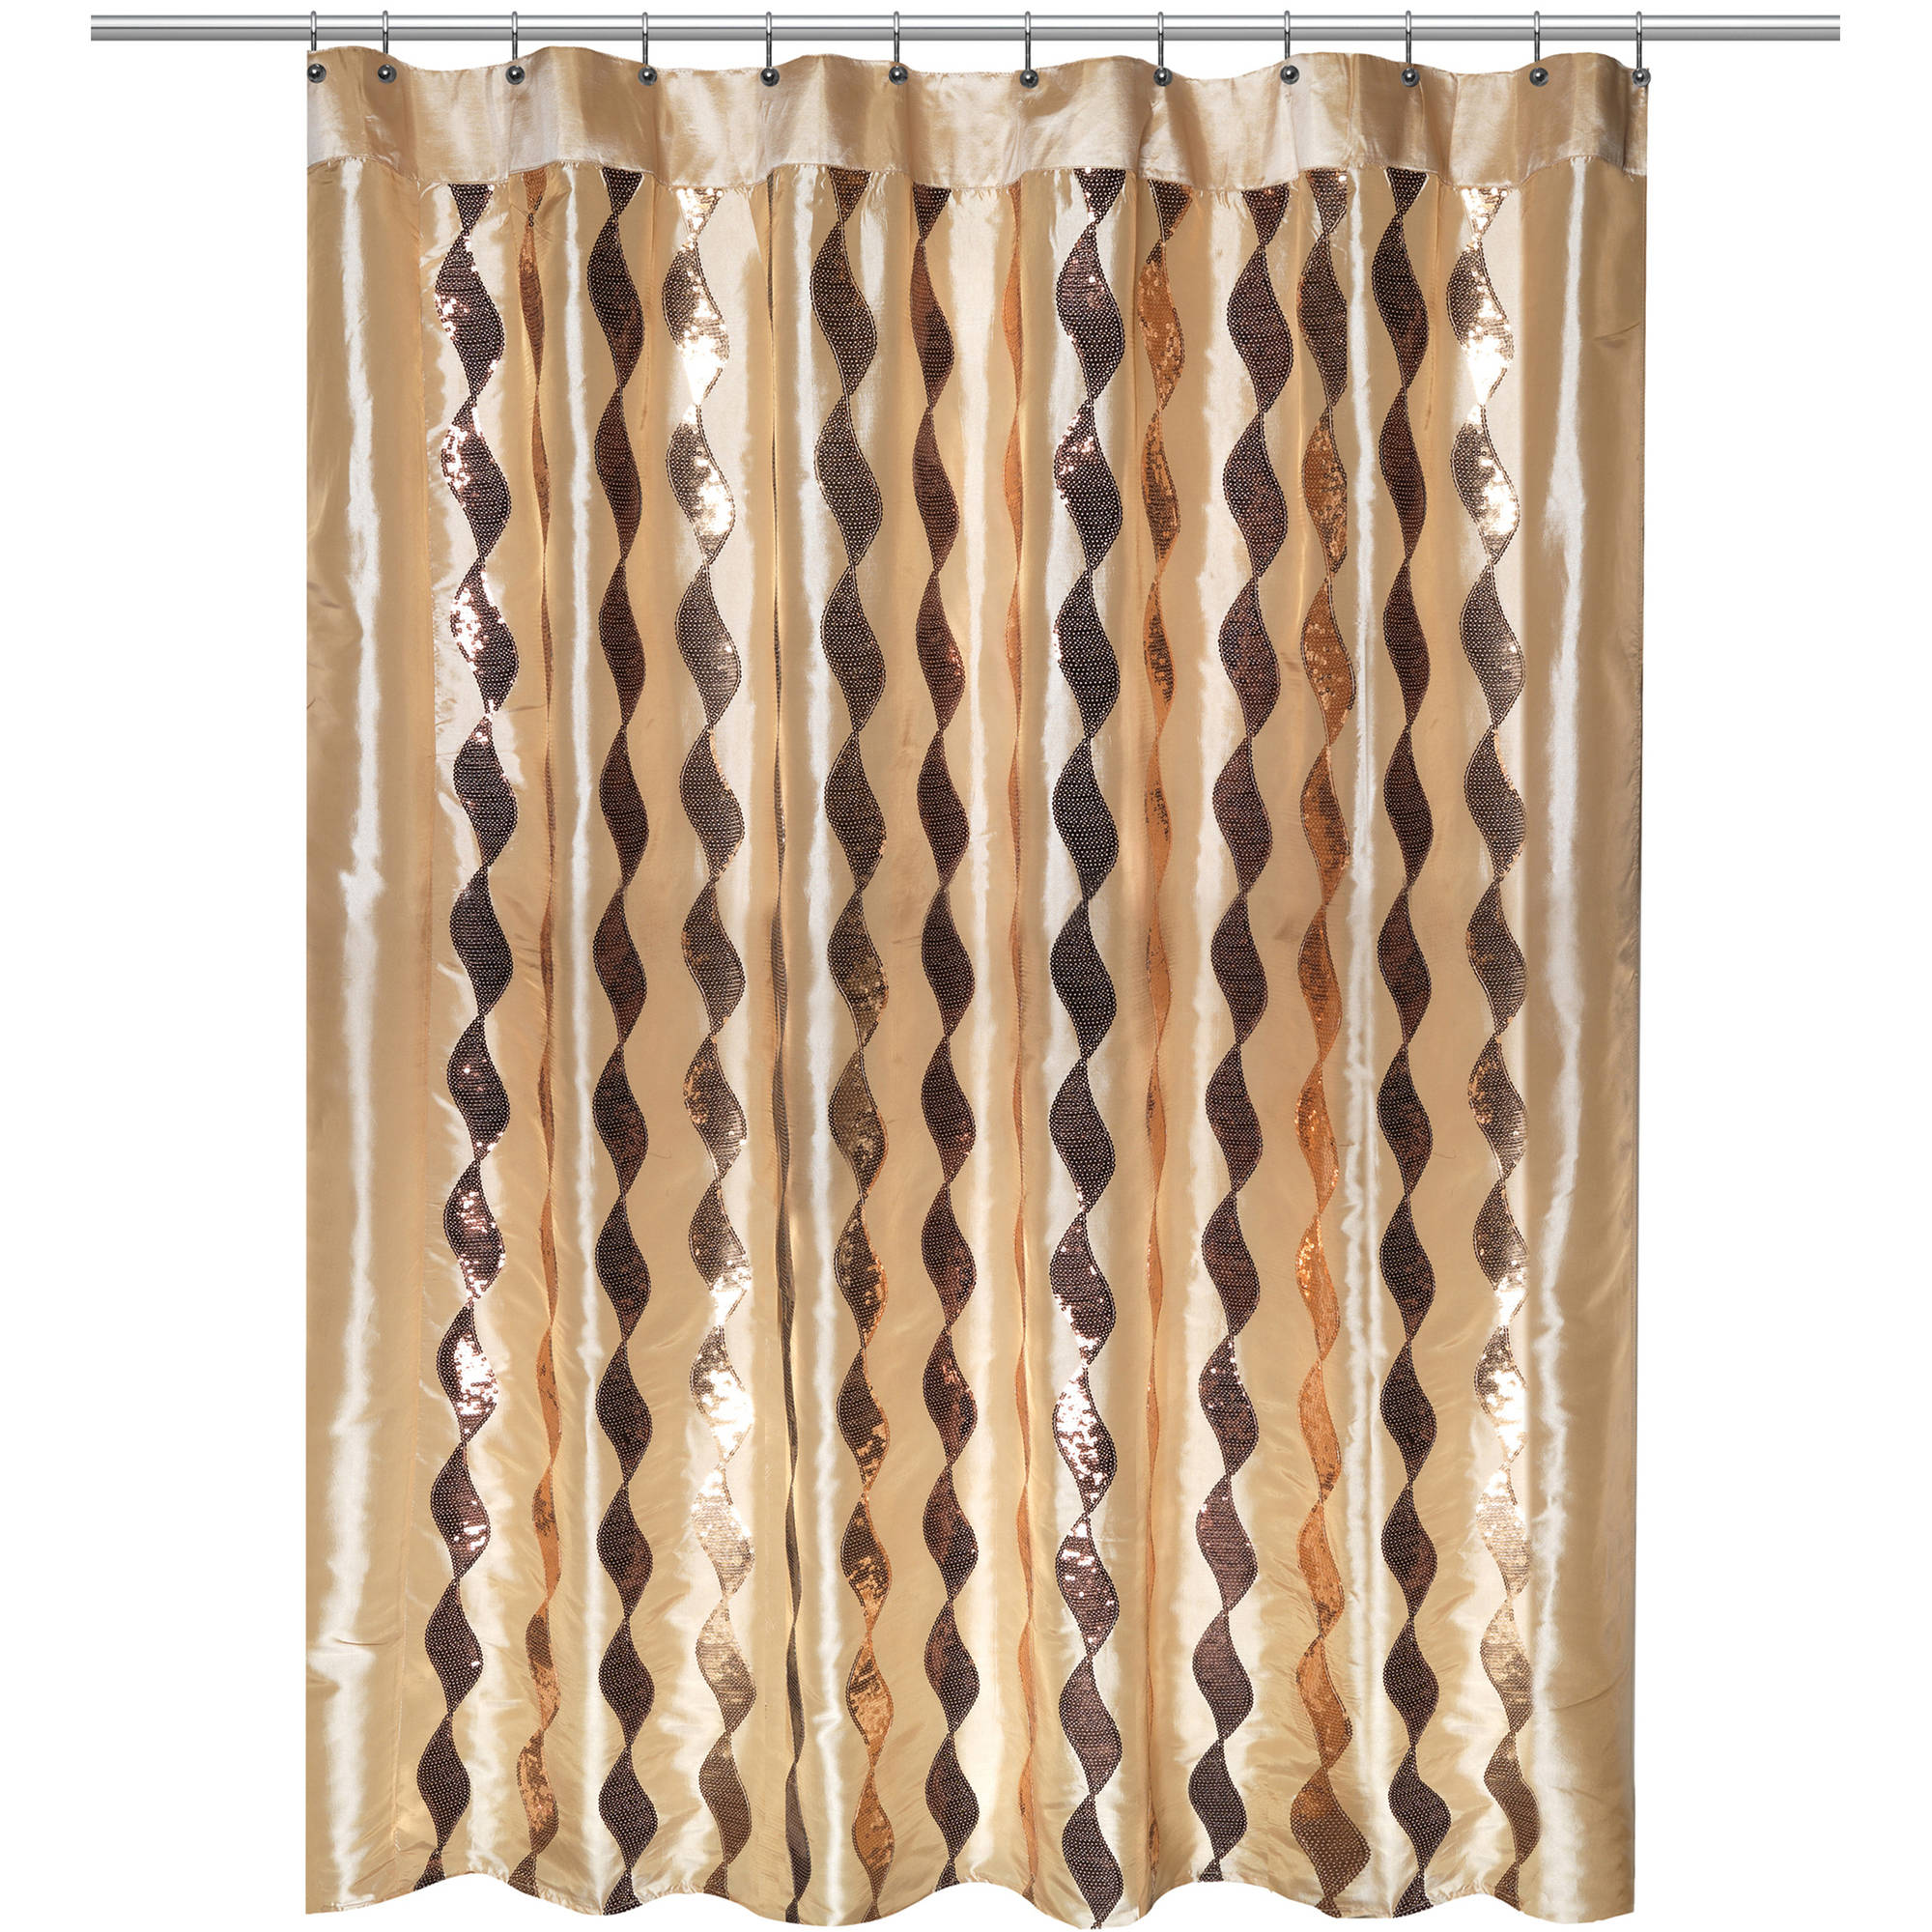 Shimmer Gold Shower Curtain